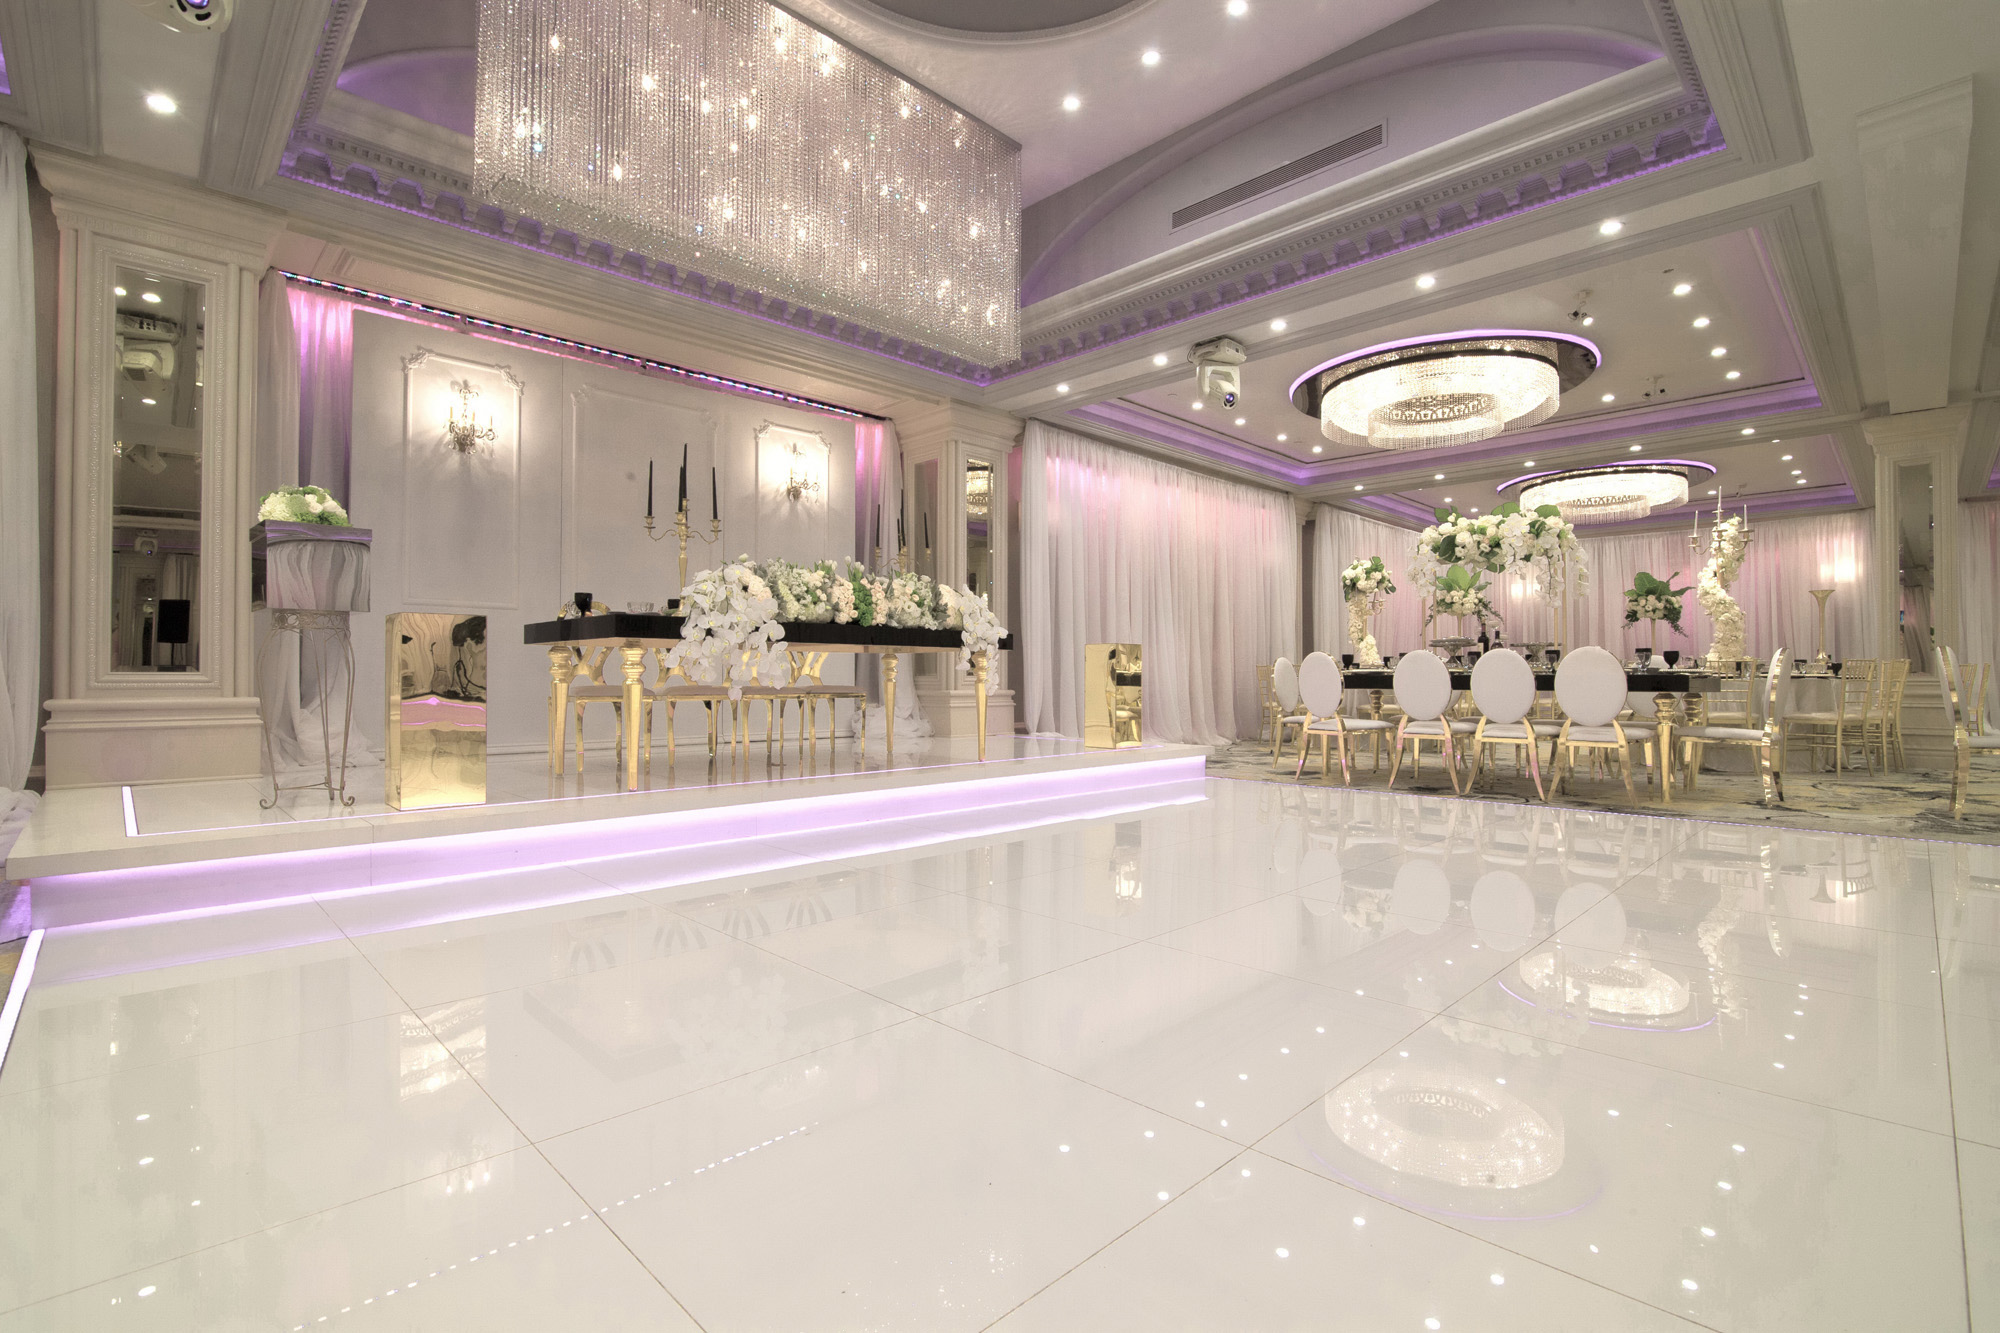 Contemporary Event & Wedding Venues in Glendale, CA